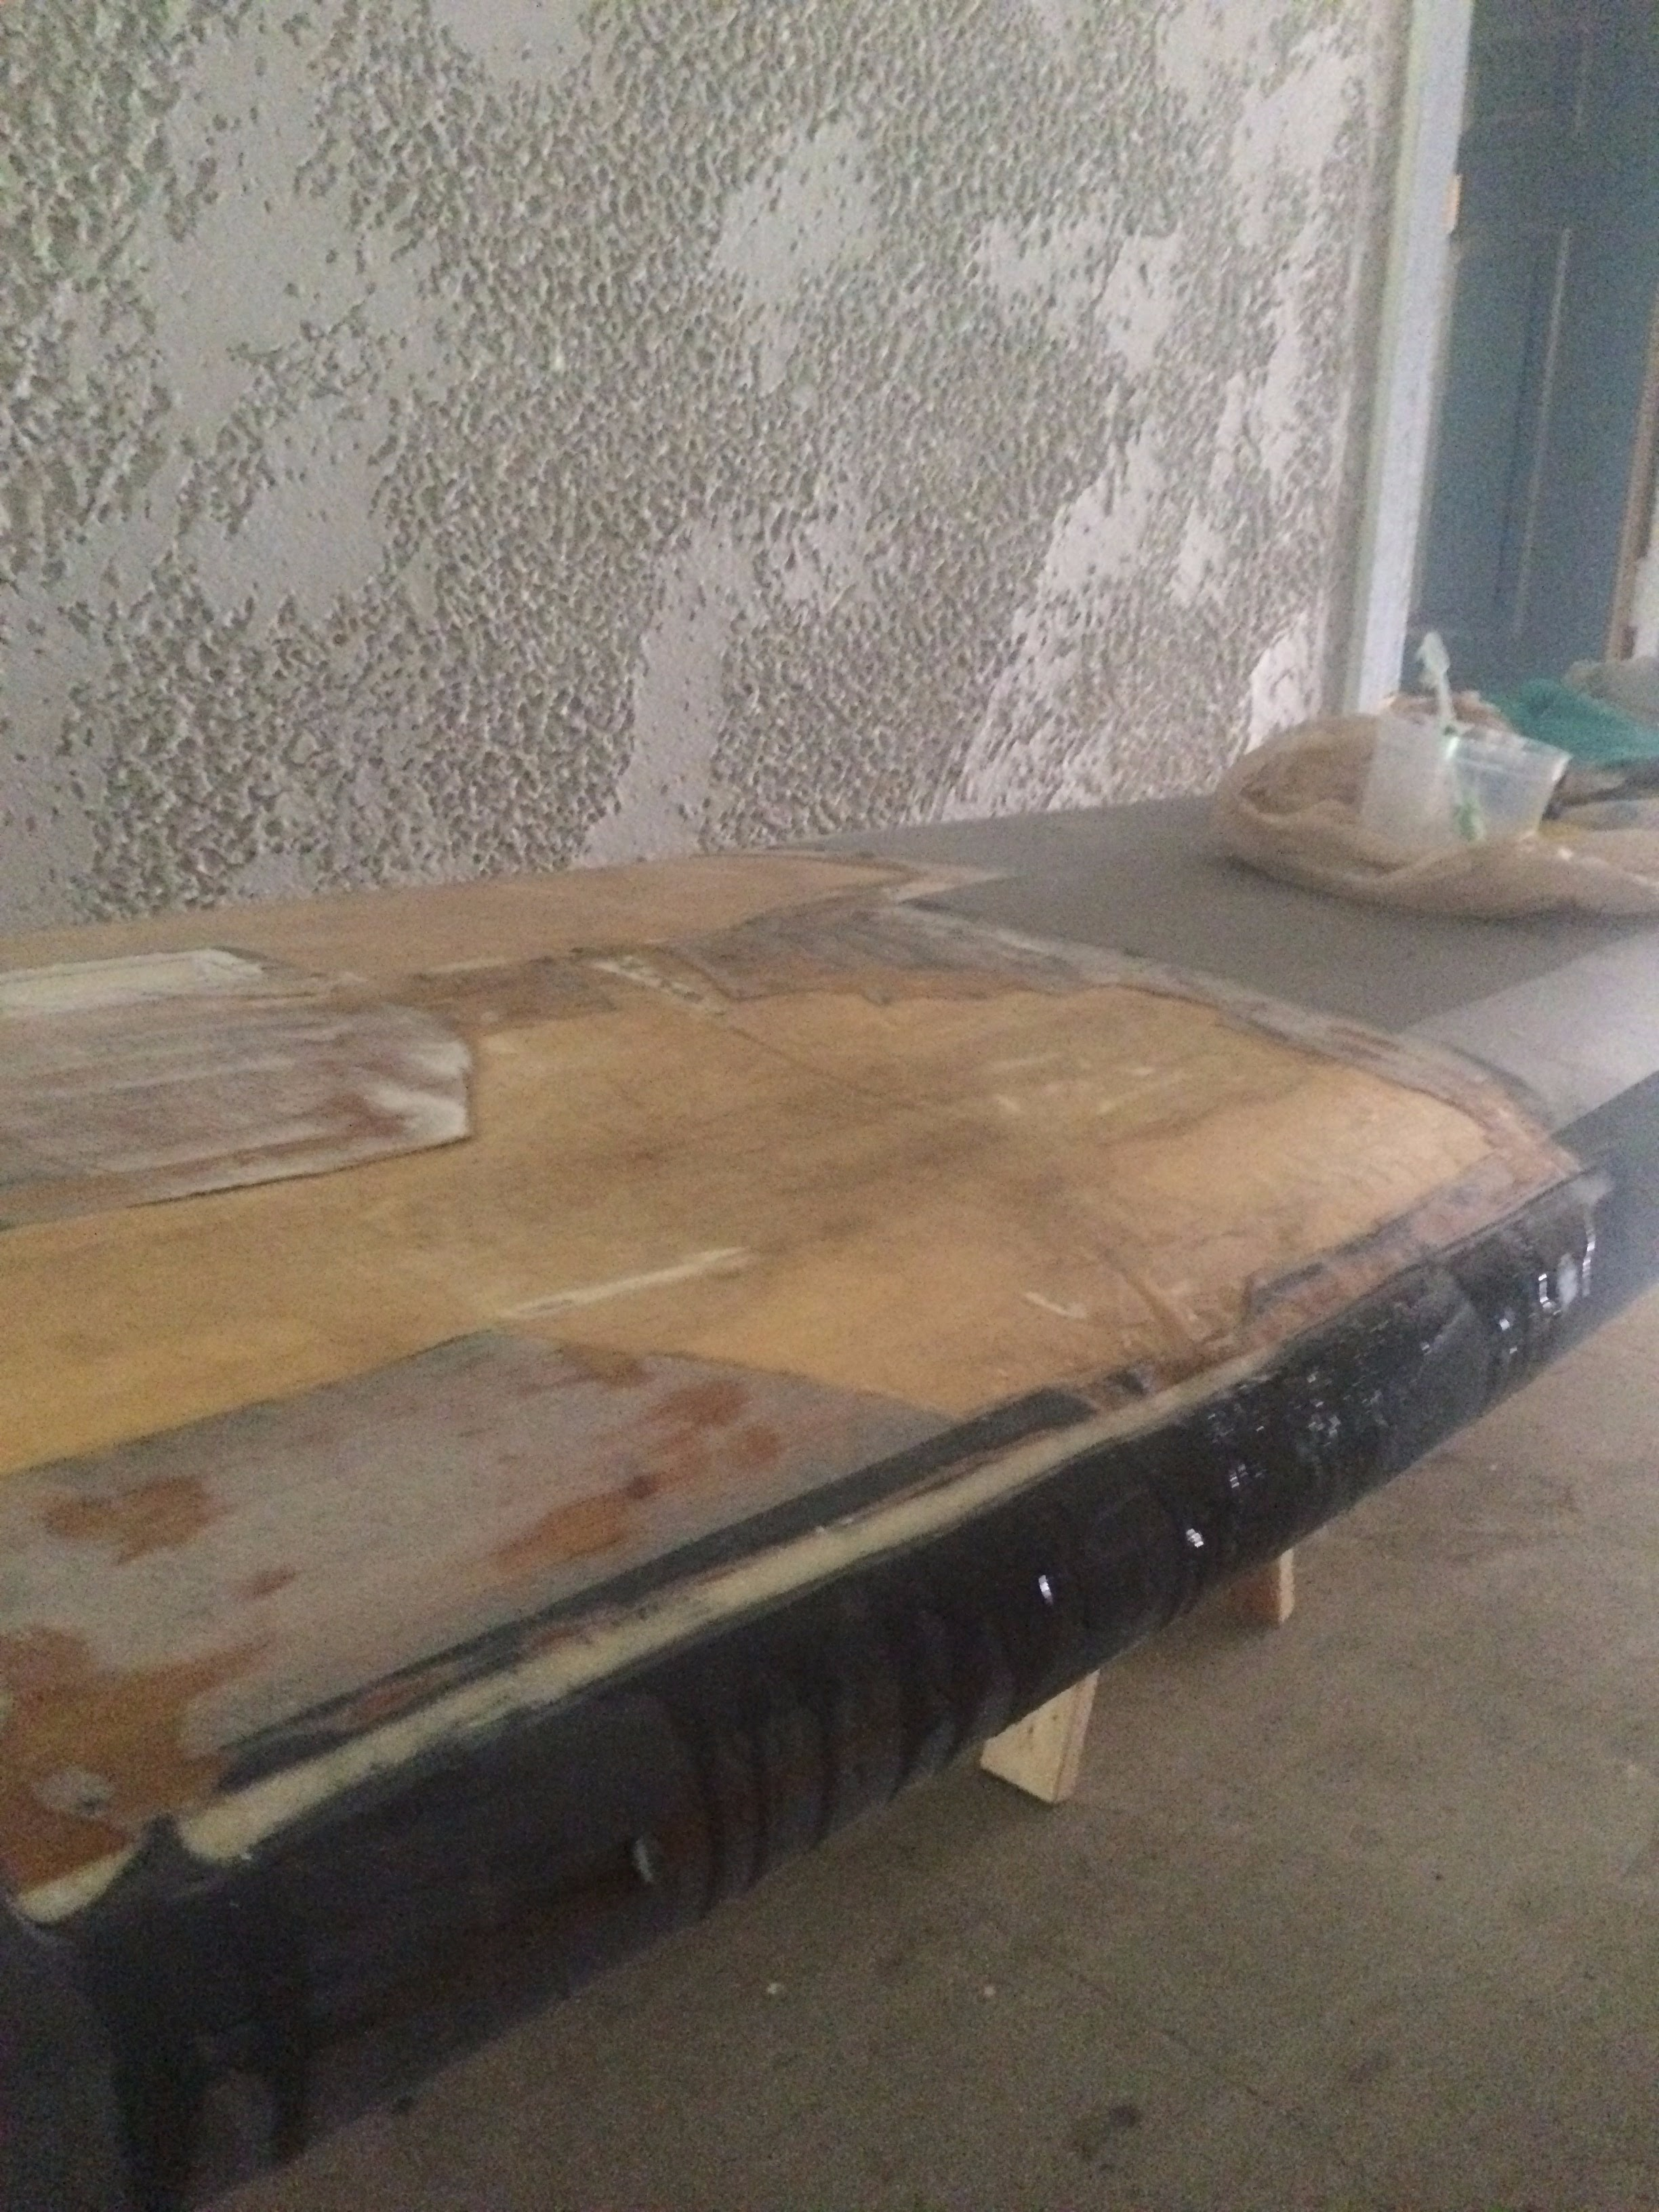 Picture of Third Epoxy Layer, Second Fiber Glass Layer & Final Layer of Fiberglass